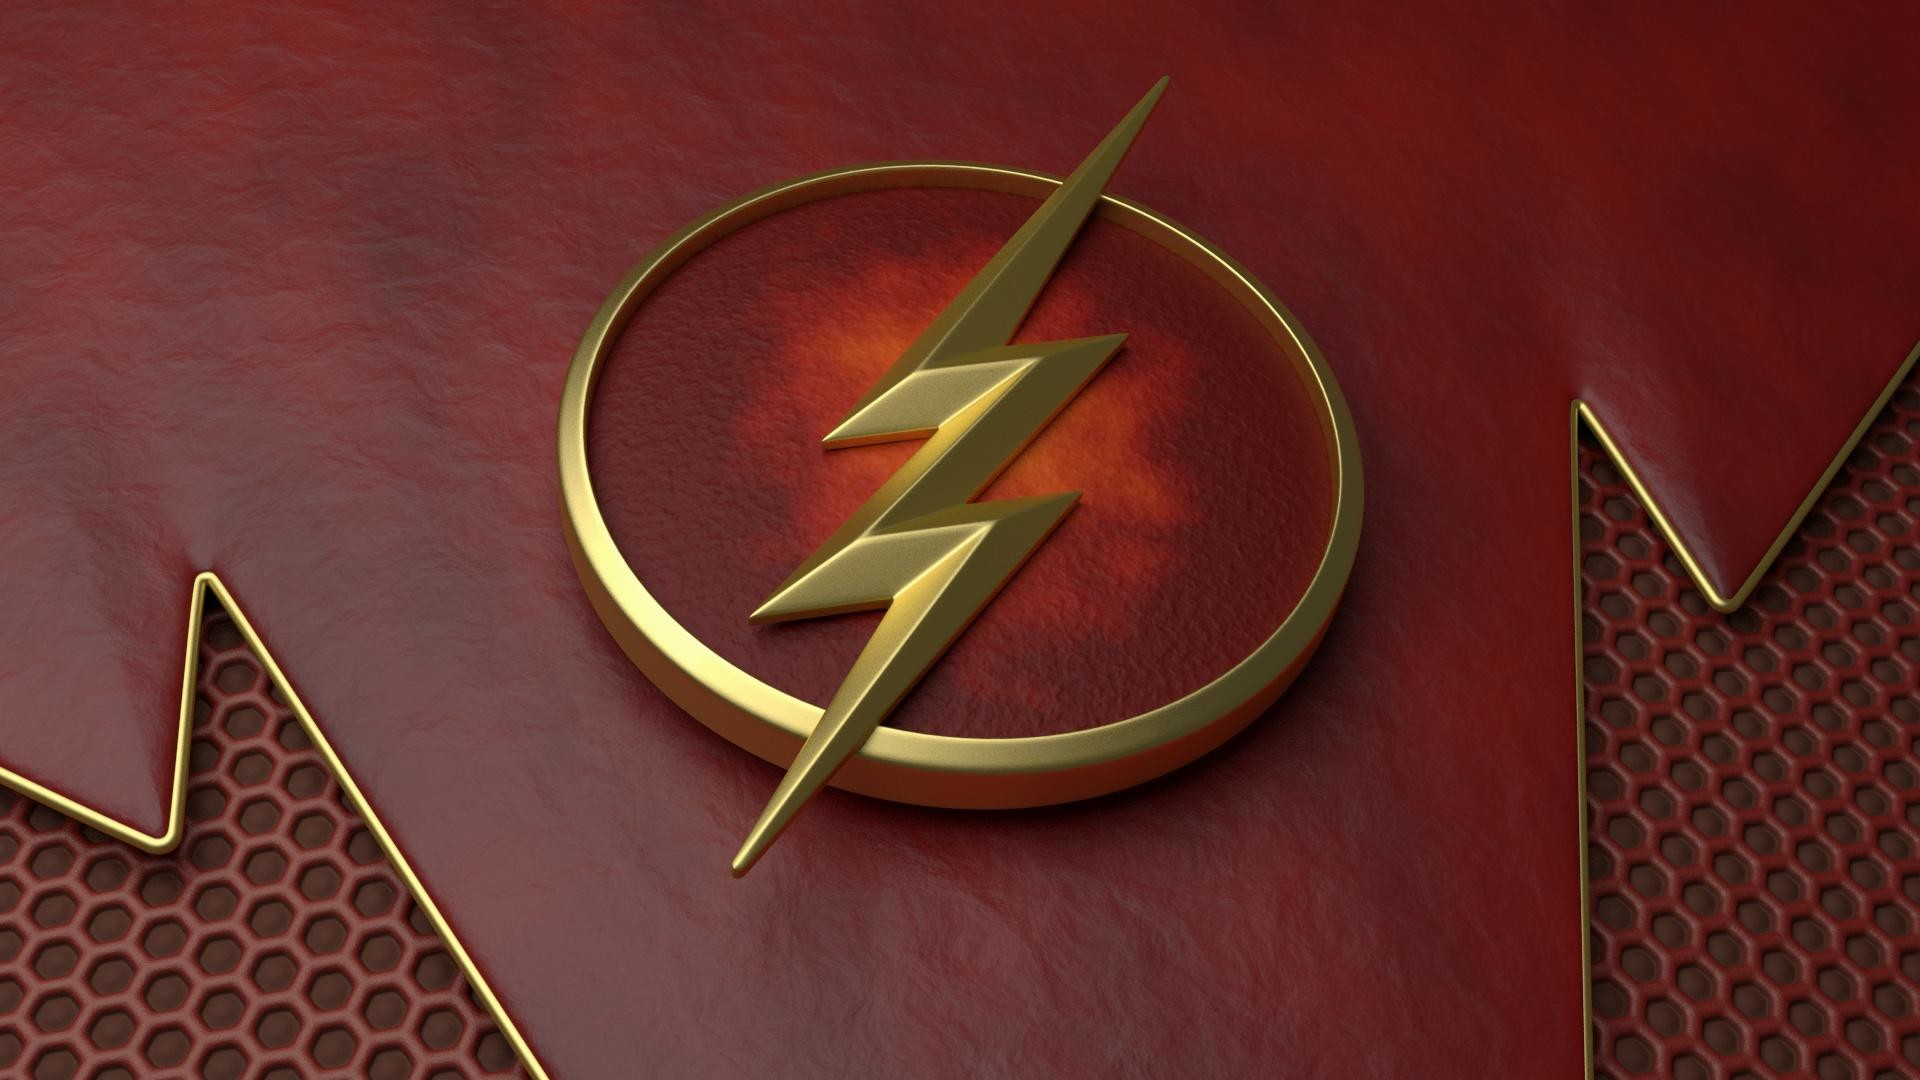 wallpaper.wiki-Flash-wallpaper-mobile-Is-Cool-PIC-